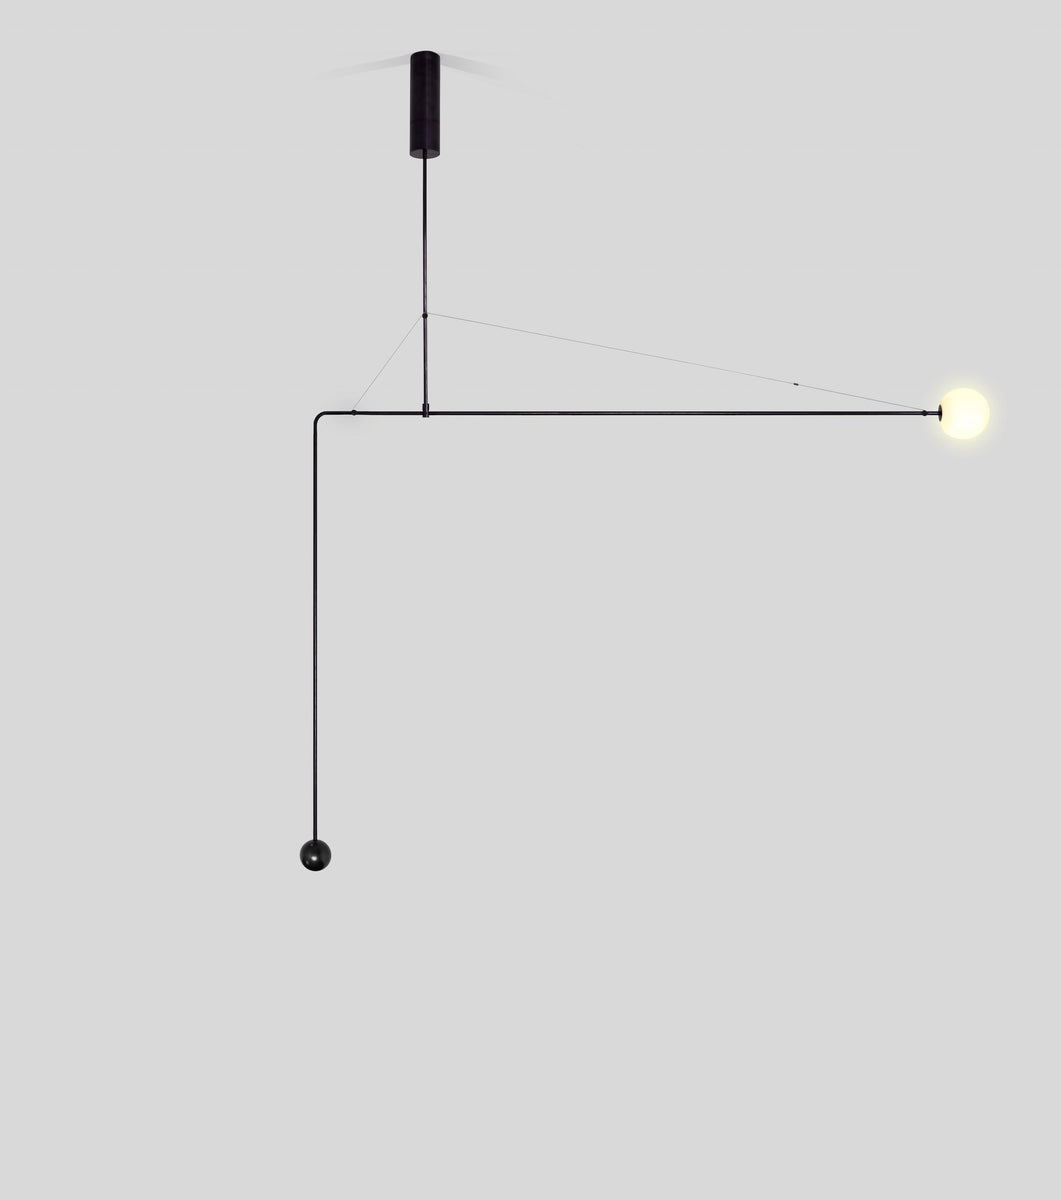 Mobile Chandelier 4 Michael Anastassiades - Image 1